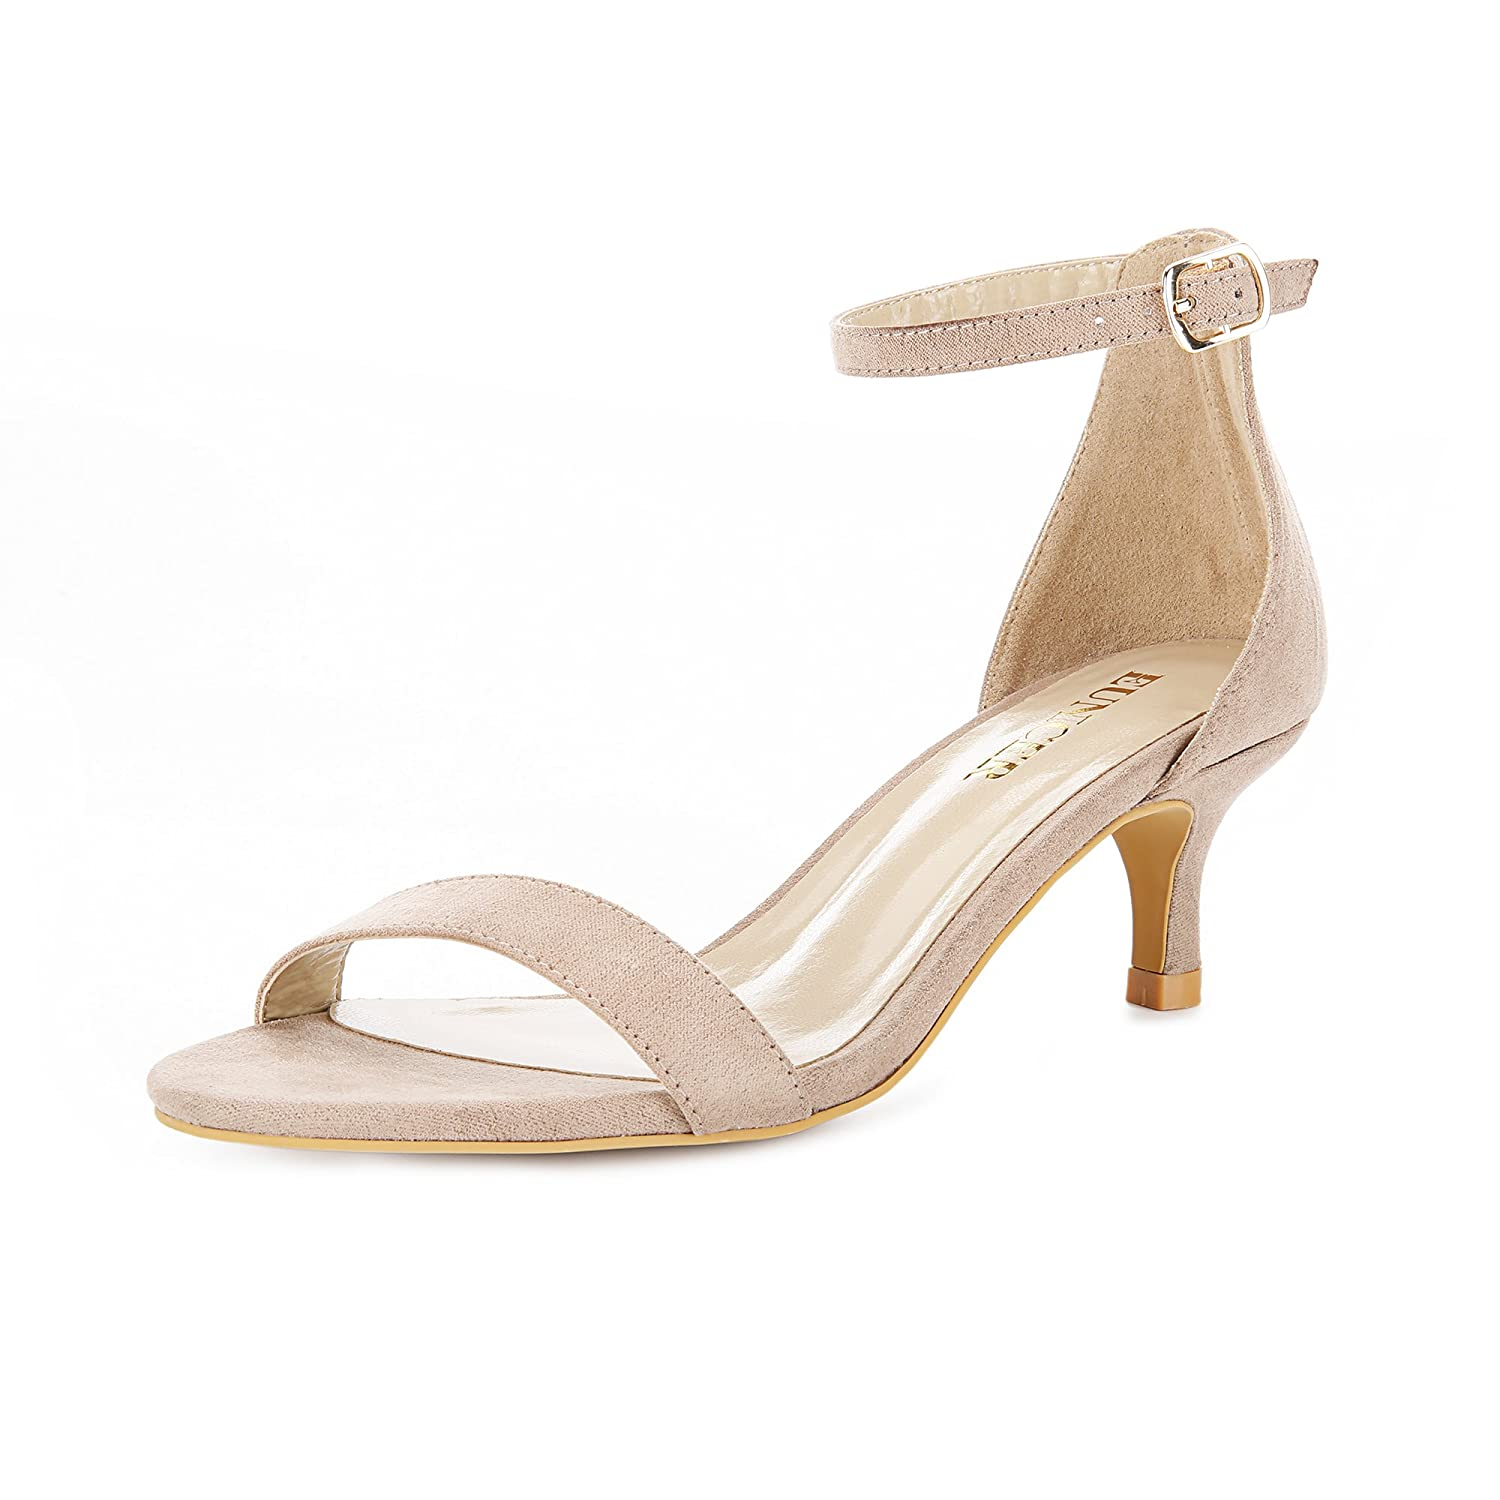 Super discount look good shoes sale complimentary shipping Eunicer Women's High Kitten Heel Stiletto Pump Sandals with Ankle Strap  Wedding Party Shoes (Half Size Large)